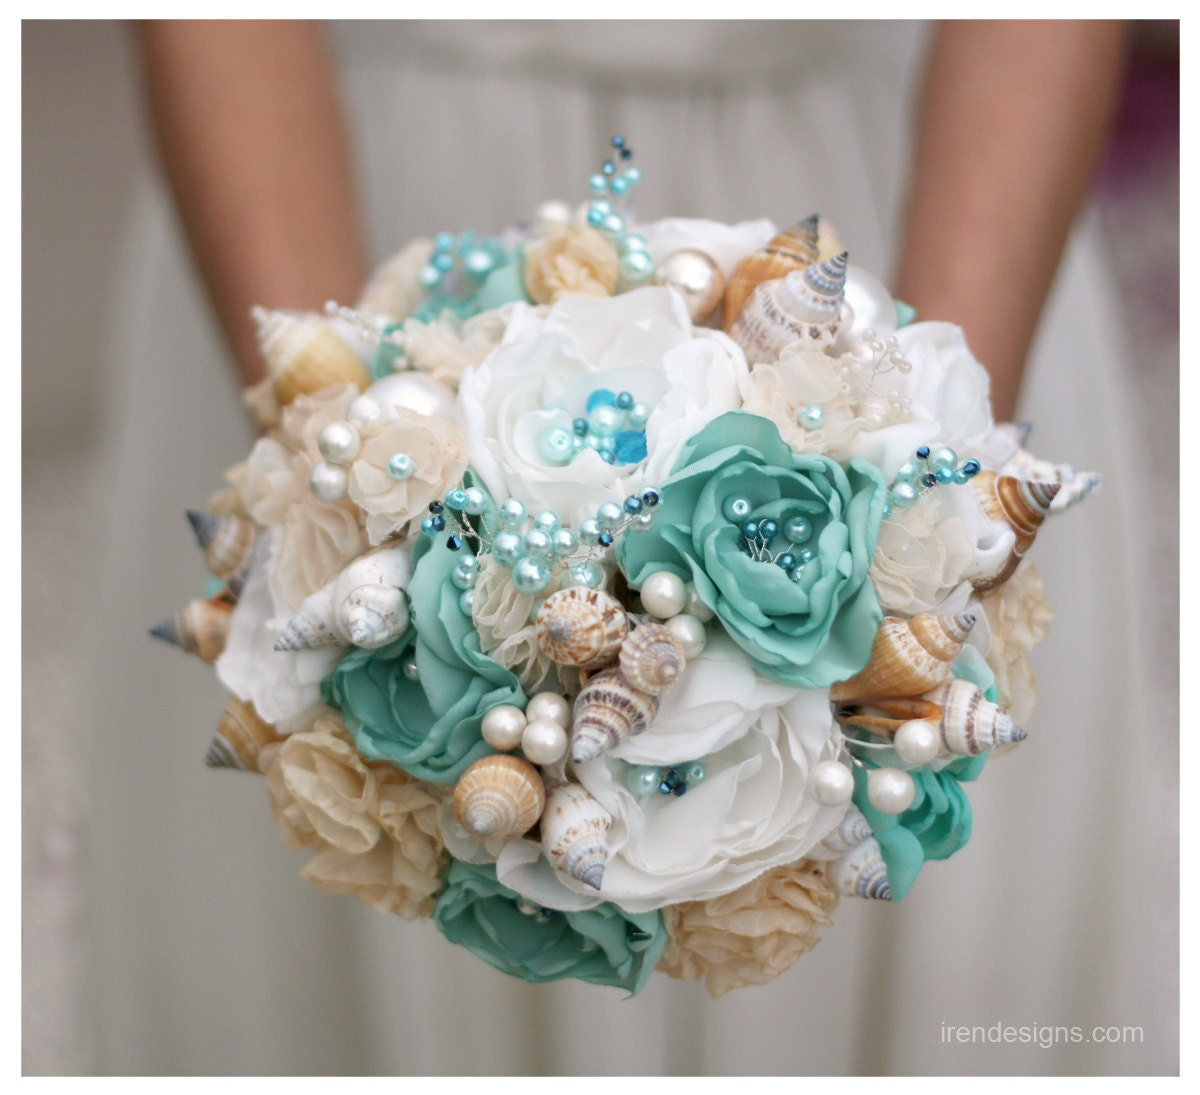 Beach Wedding Flower Ideas: Seashells Wedding Bouquet For Beach Wedding. By IrenDesigns